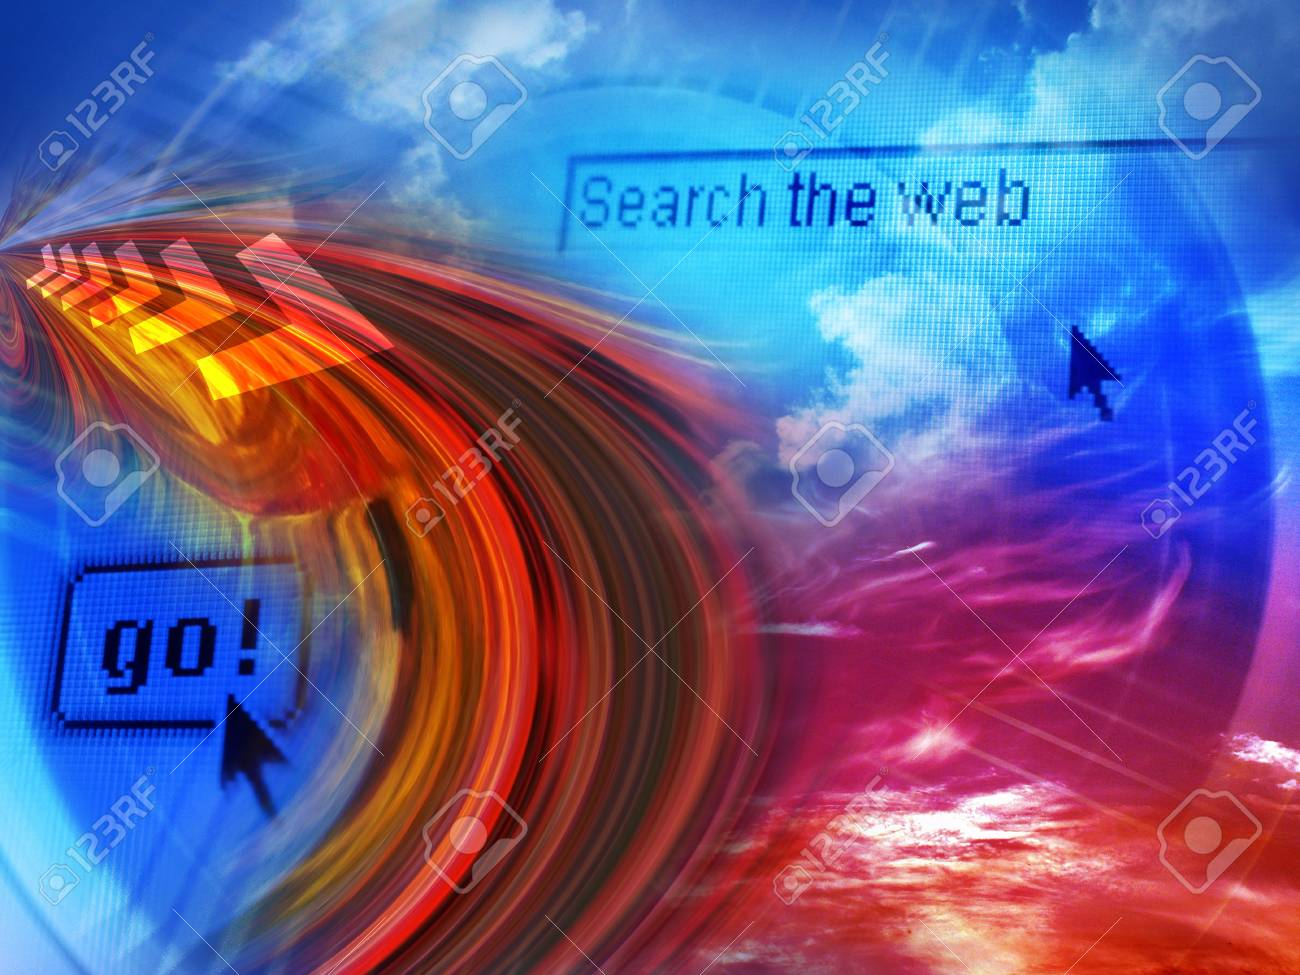 Search the Internet Stock Photo - 358260